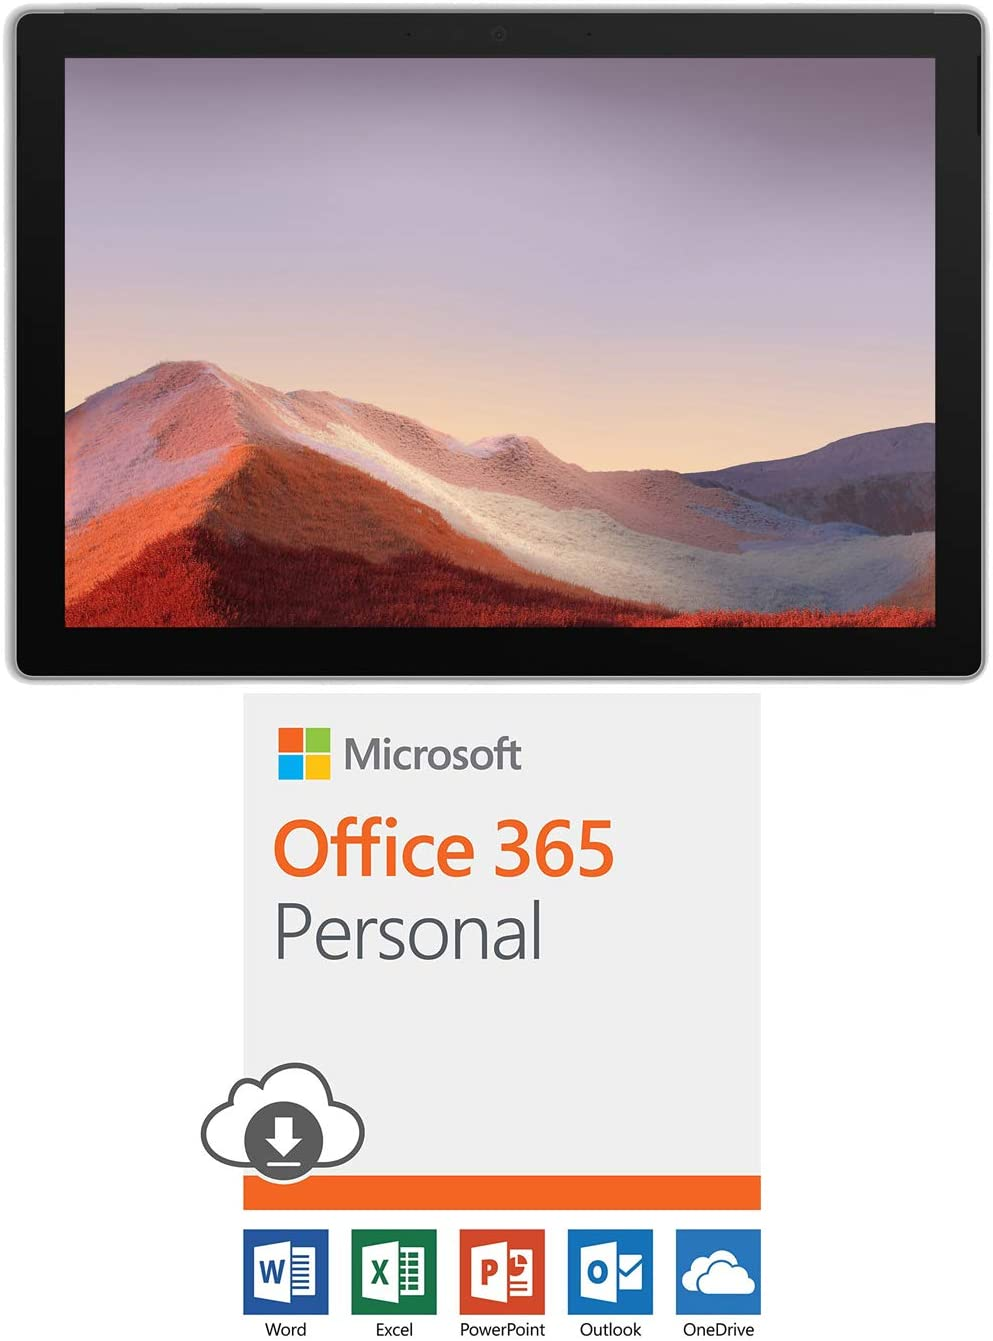 Microsoft QWU-00001 Surface Pro 7 12.3 inch Touch Intel i5-1035G4 8GB/128GB Platinum Bundle Office 365 Personal 1-Year Subscription for 1 Person